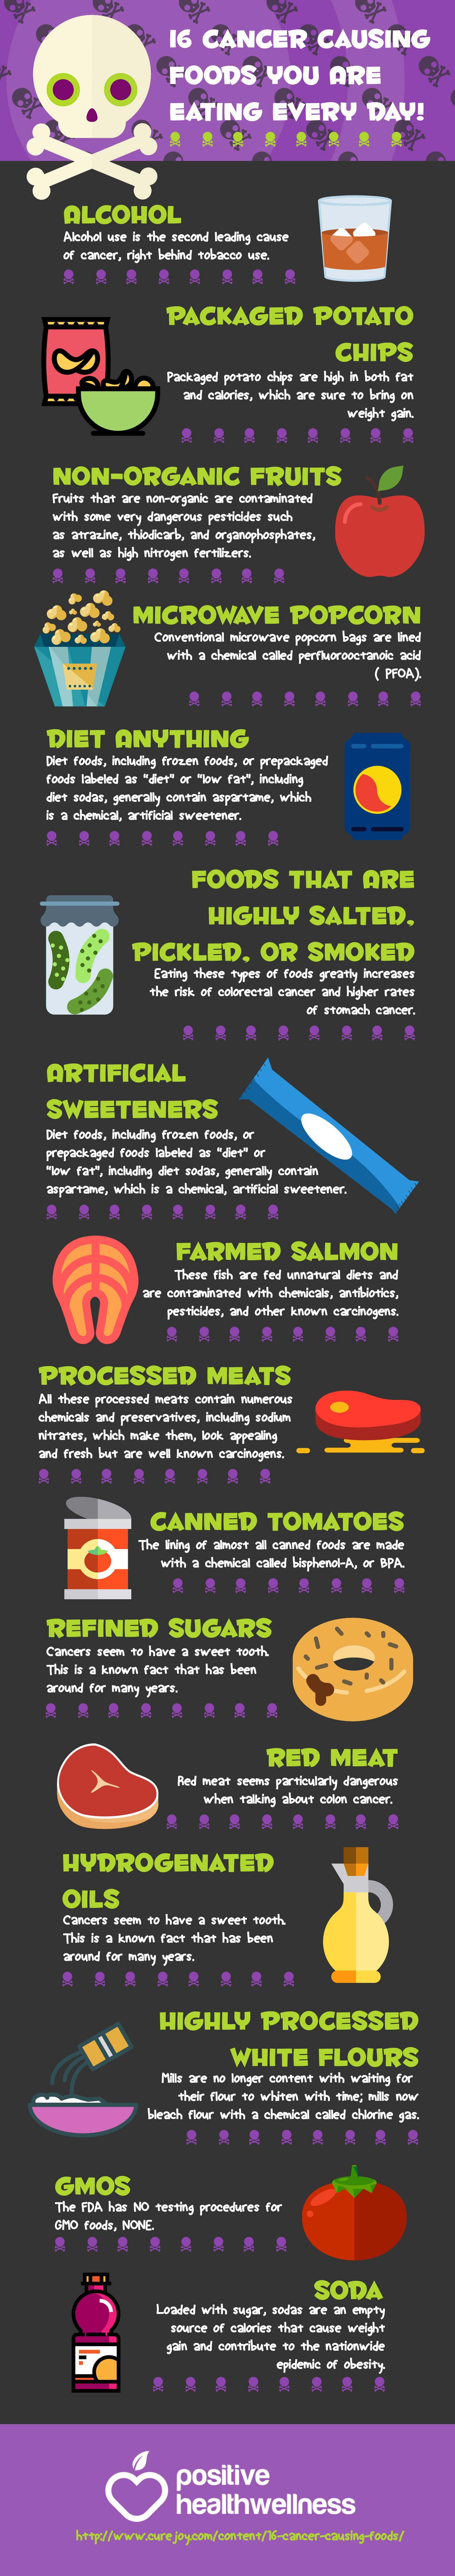 16 Cancer Causing Foods You Are Eating Every Day!